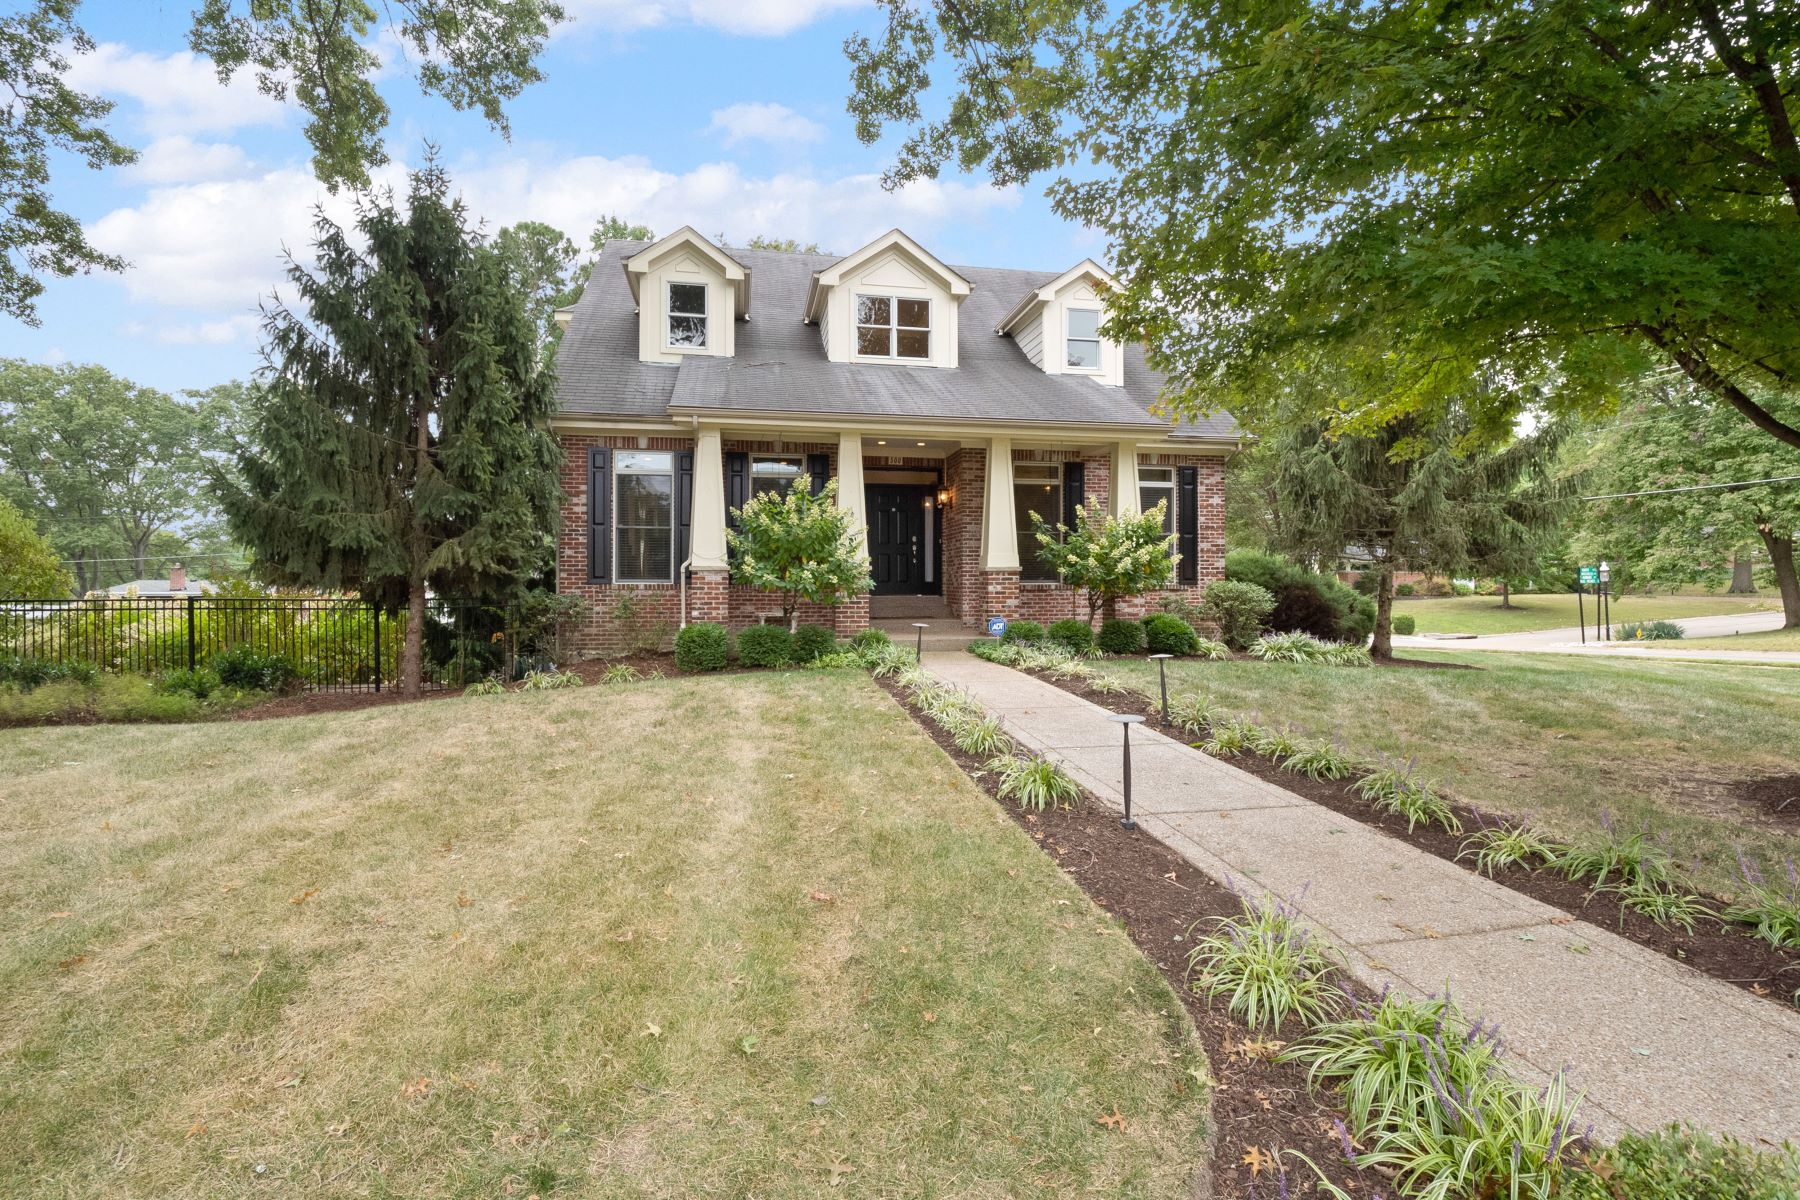 Single Family Homes for Sale at Welcome to Wonderful Warson Woods! 500 Monaco Drive Warson Woods, Missouri 63122 United States